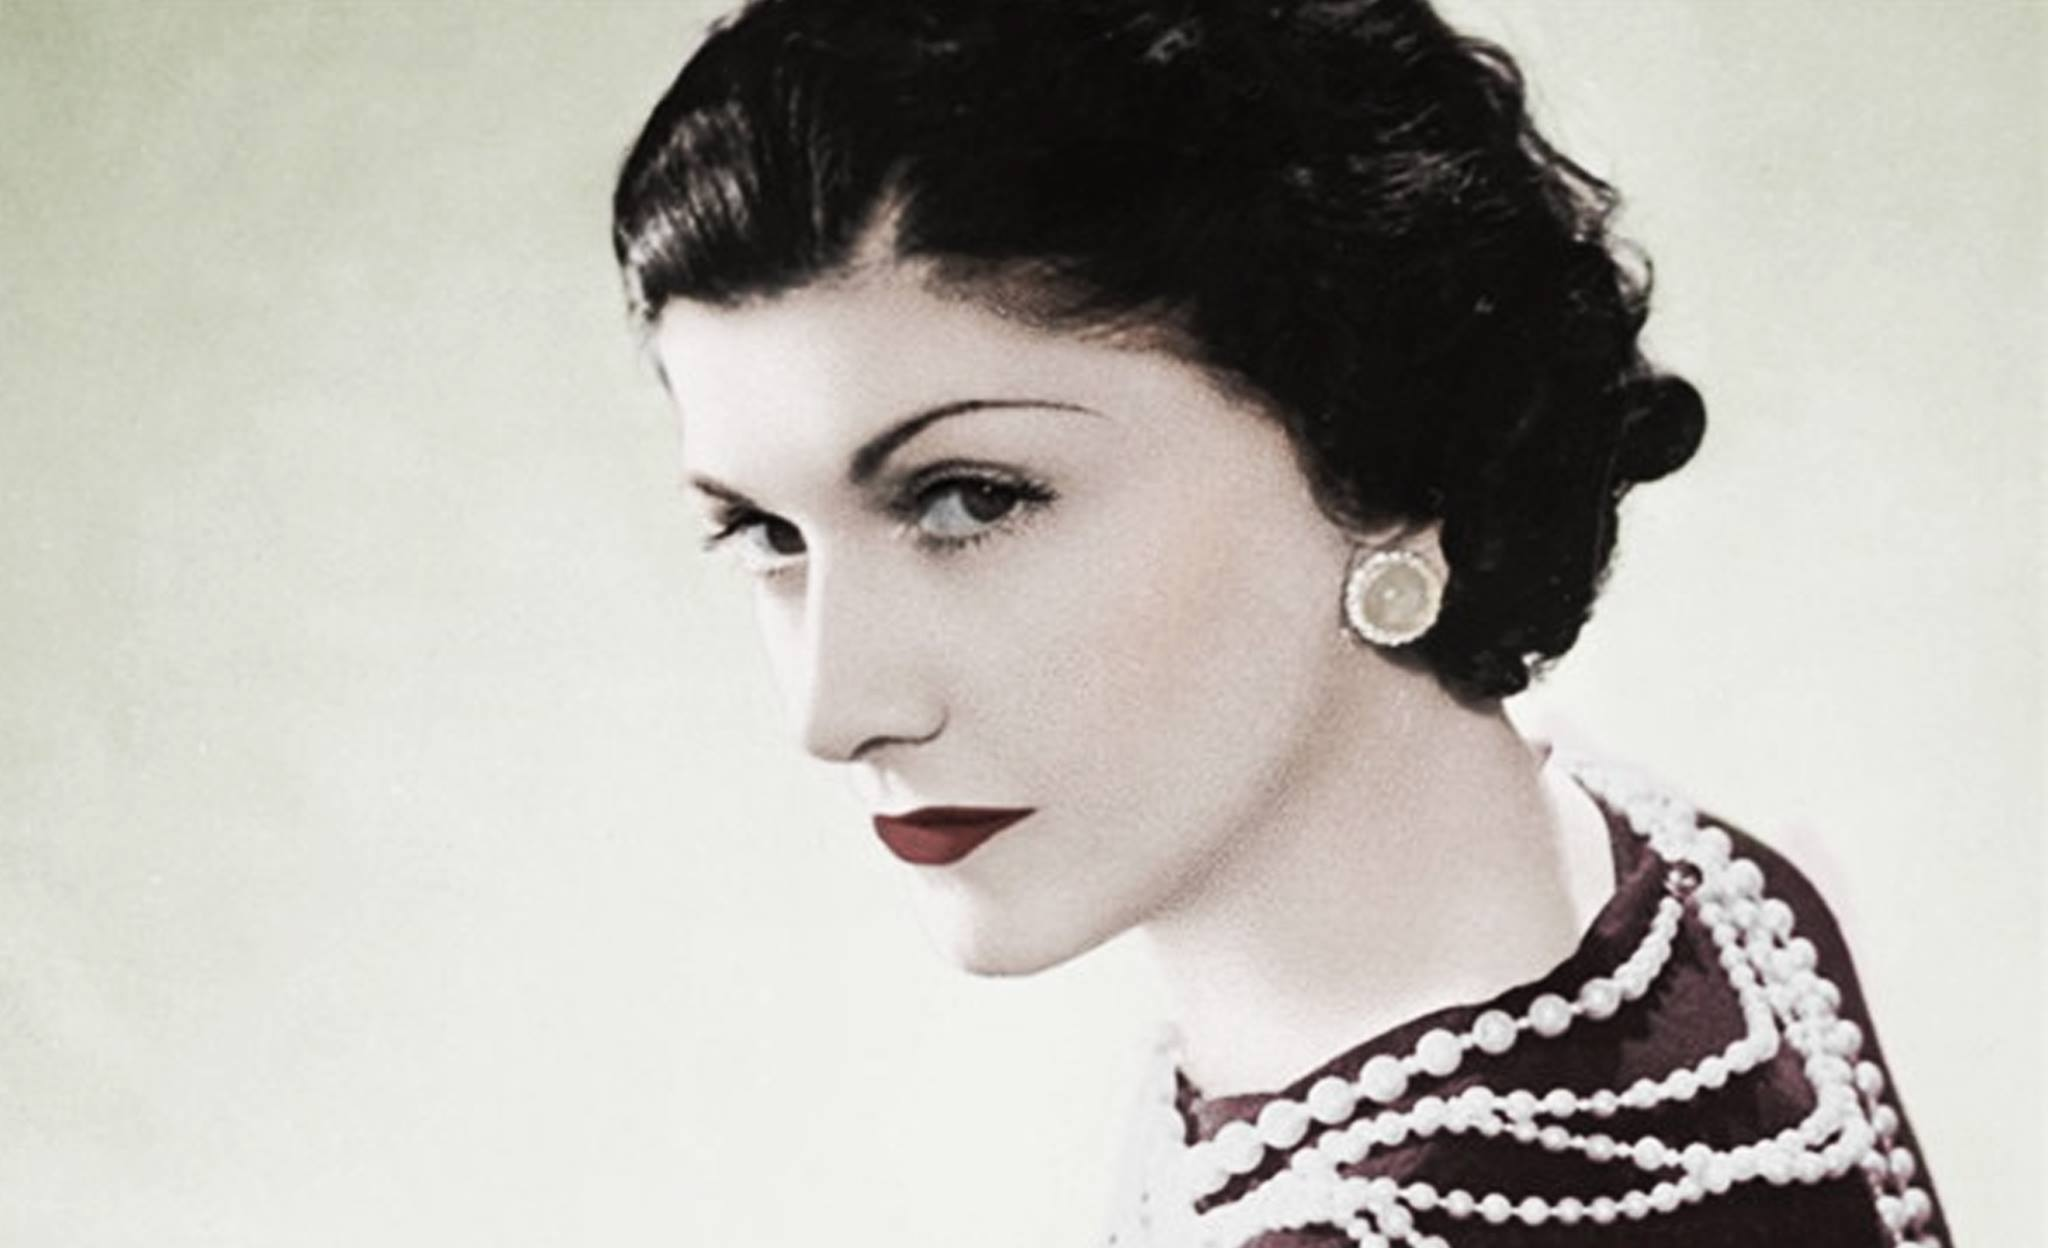 Beauty rules from the legend, Coco Chanel in her own words ...